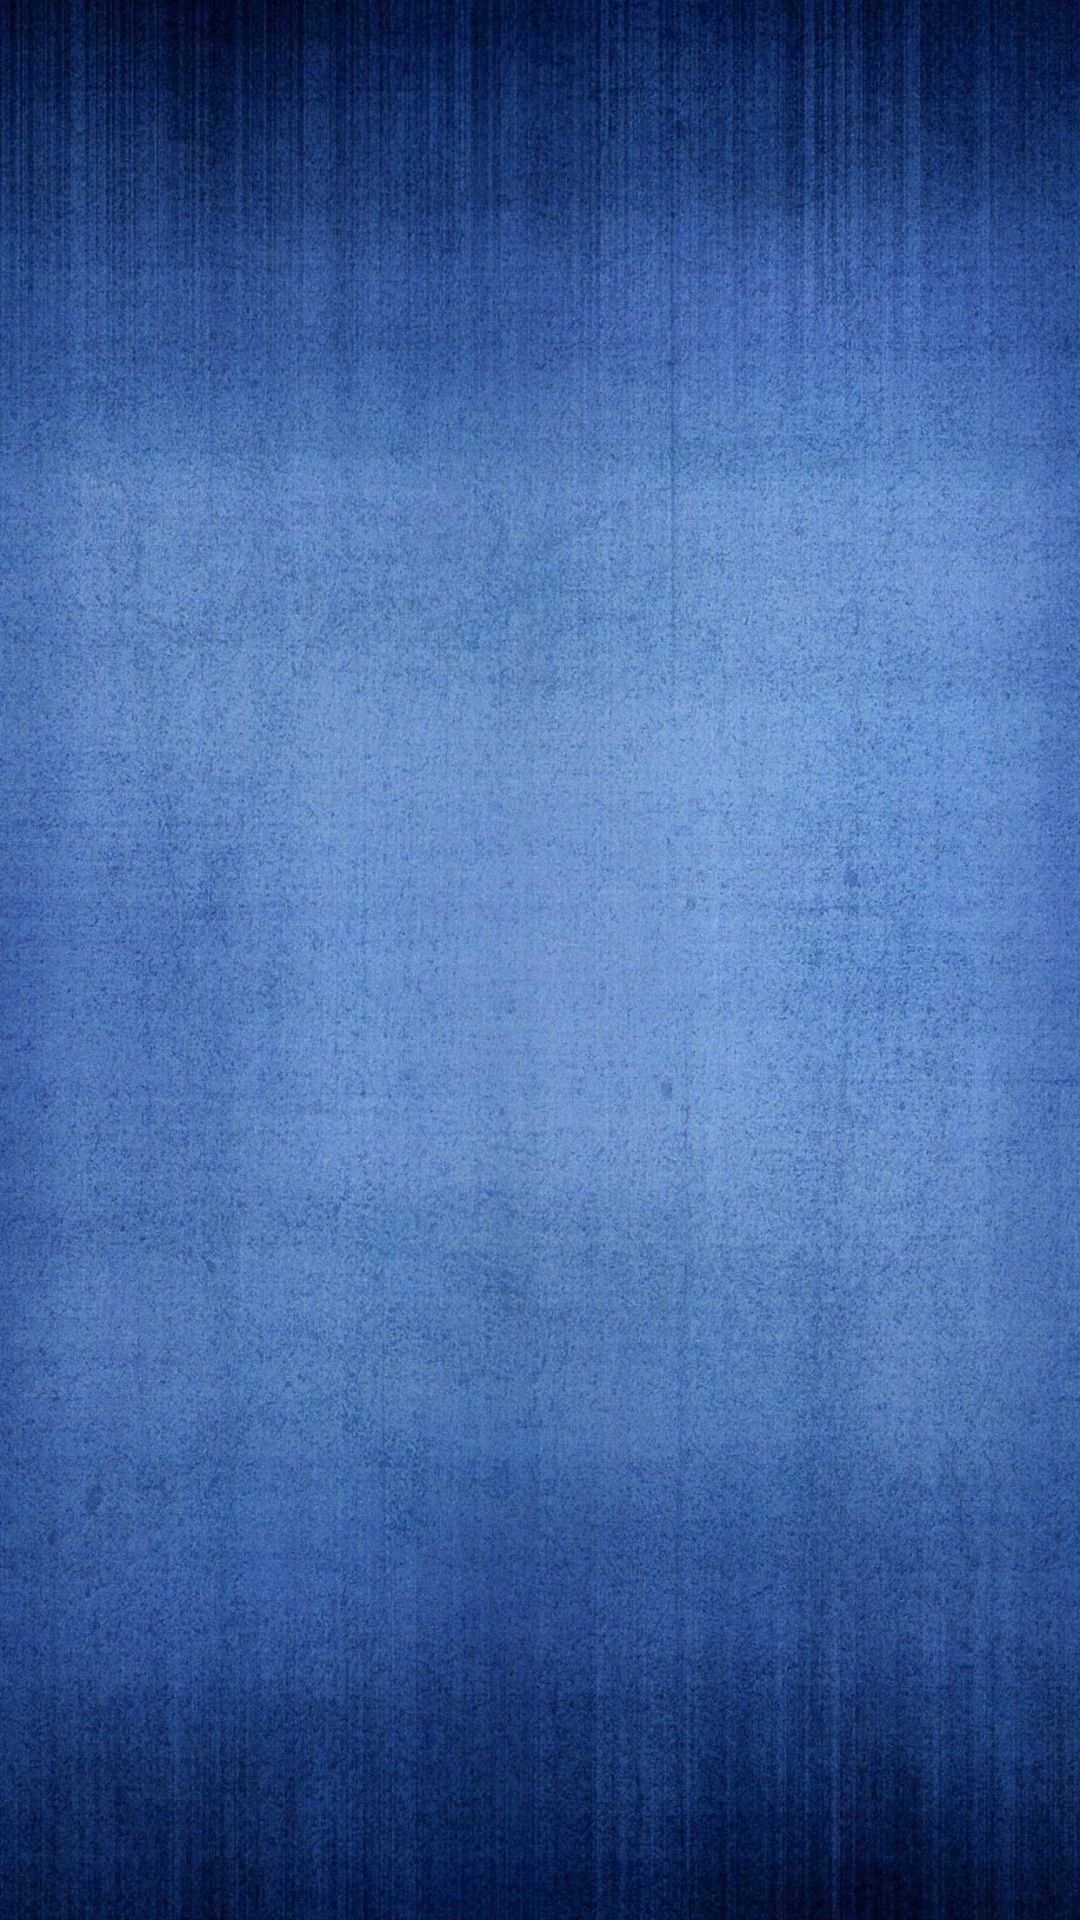 Hd Abstract Simple Blue Iphone 6 6s Plus Wallpapers Abstract Mobile Backgrounds Down Simple Phone Wallpapers Simple Wallpaper For Mobile Simple Wallpapers